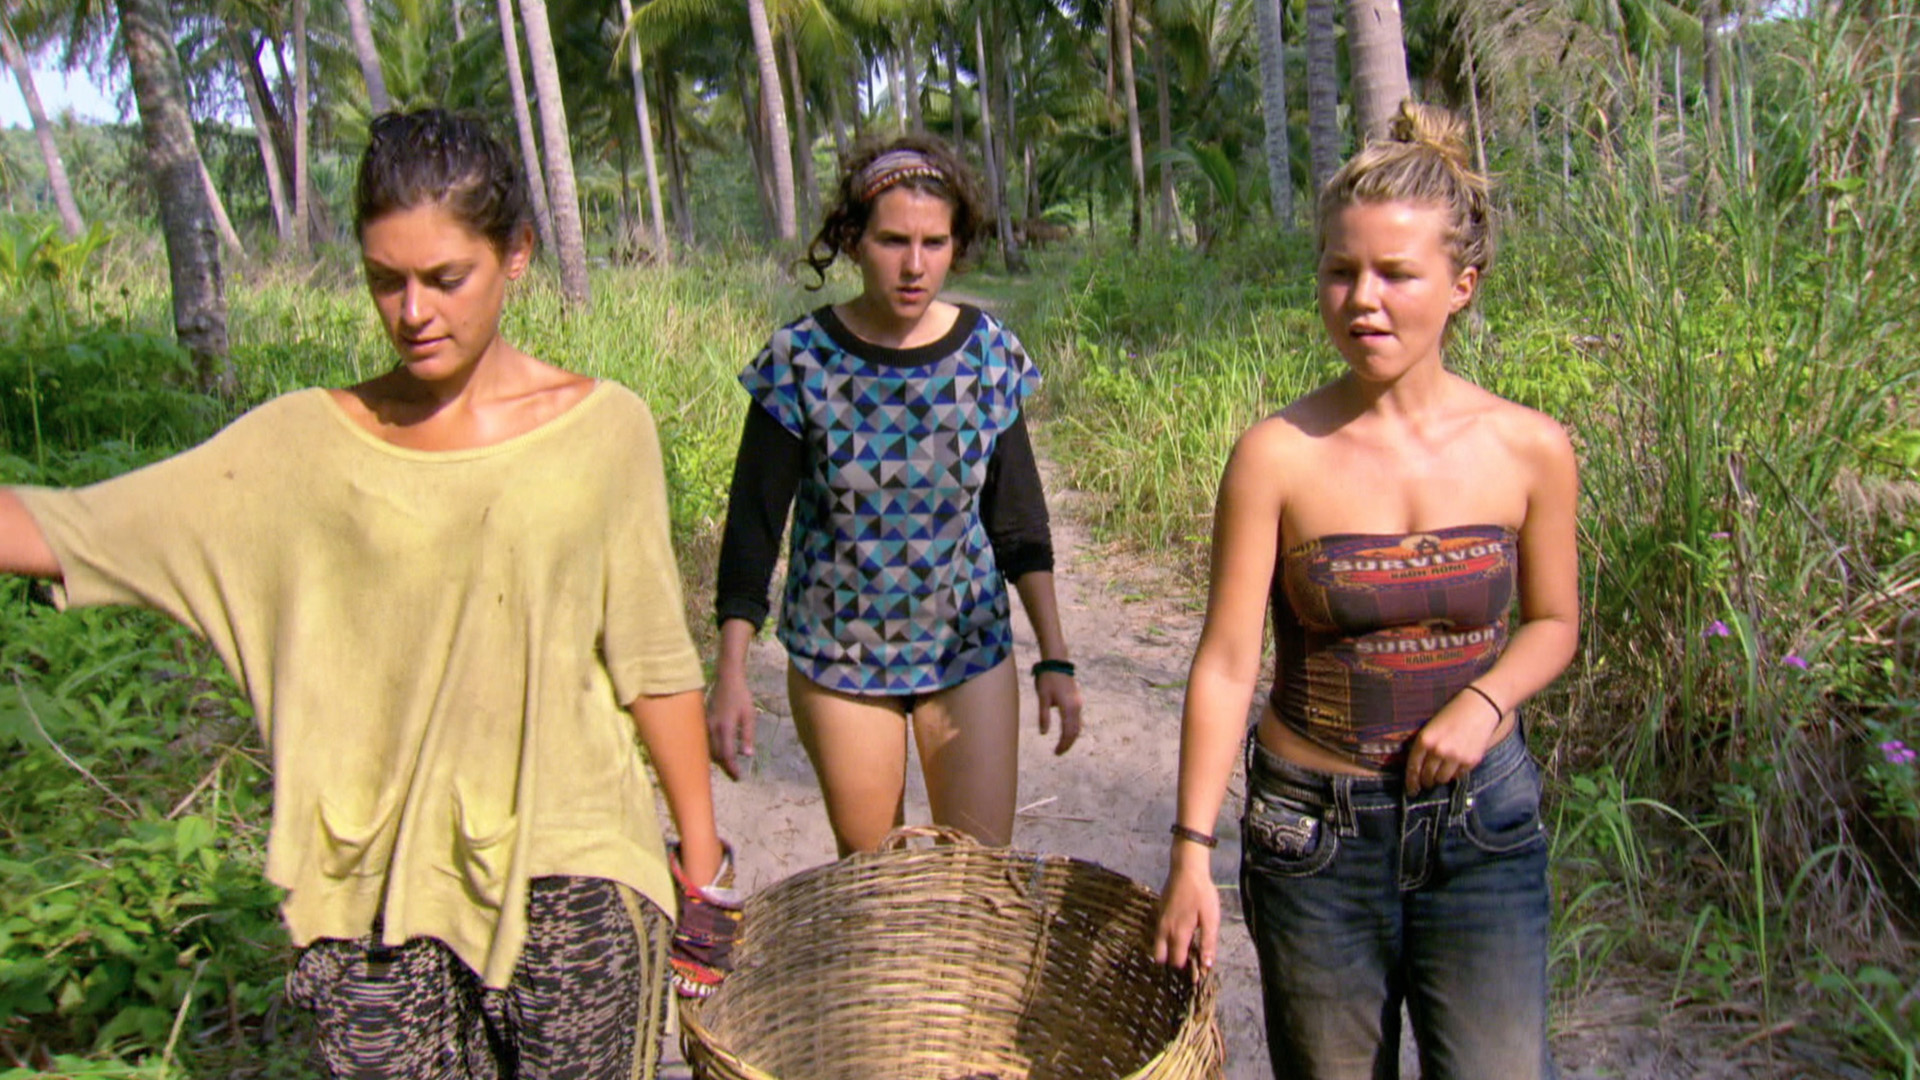 Michele, Aubry, and Julia tend to their duties around camp.